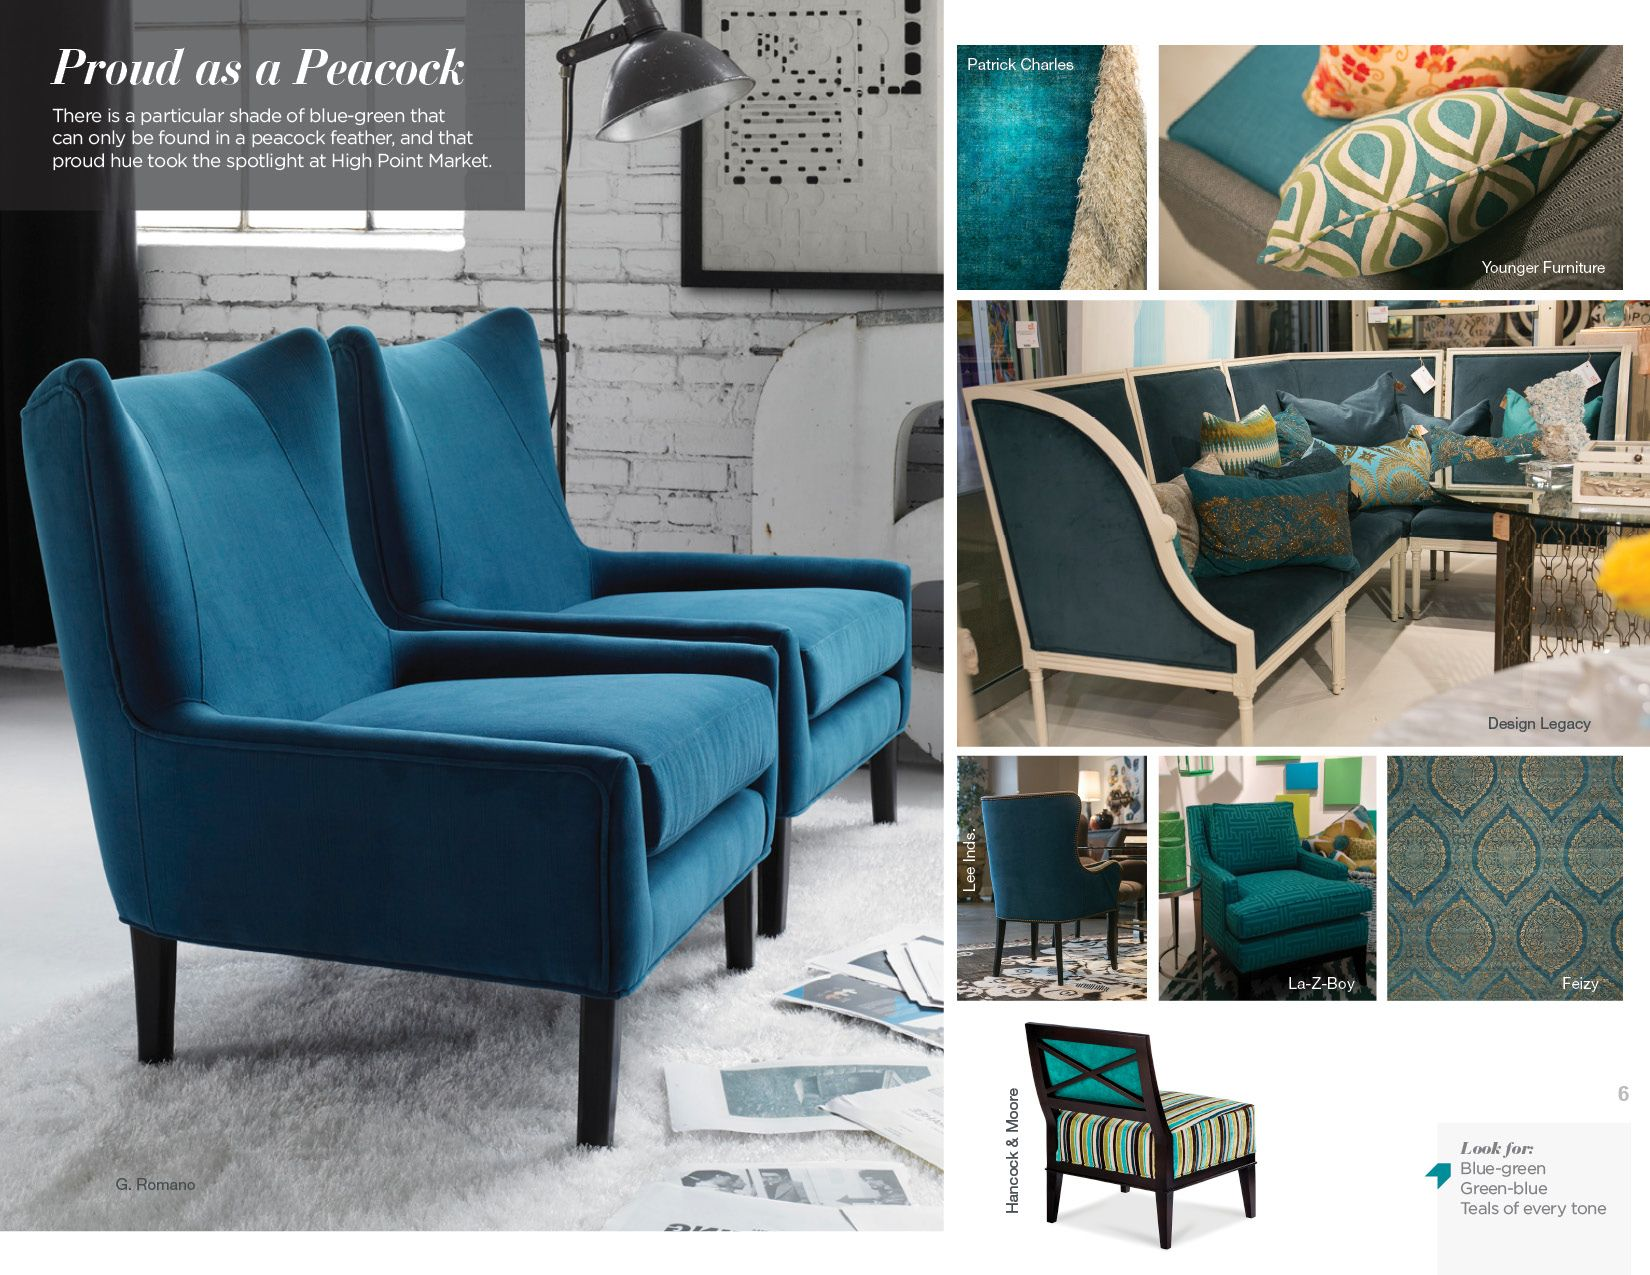 Awe Inspiring High Point Market Trend Peacock Blue Green Decor Home Gmtry Best Dining Table And Chair Ideas Images Gmtryco